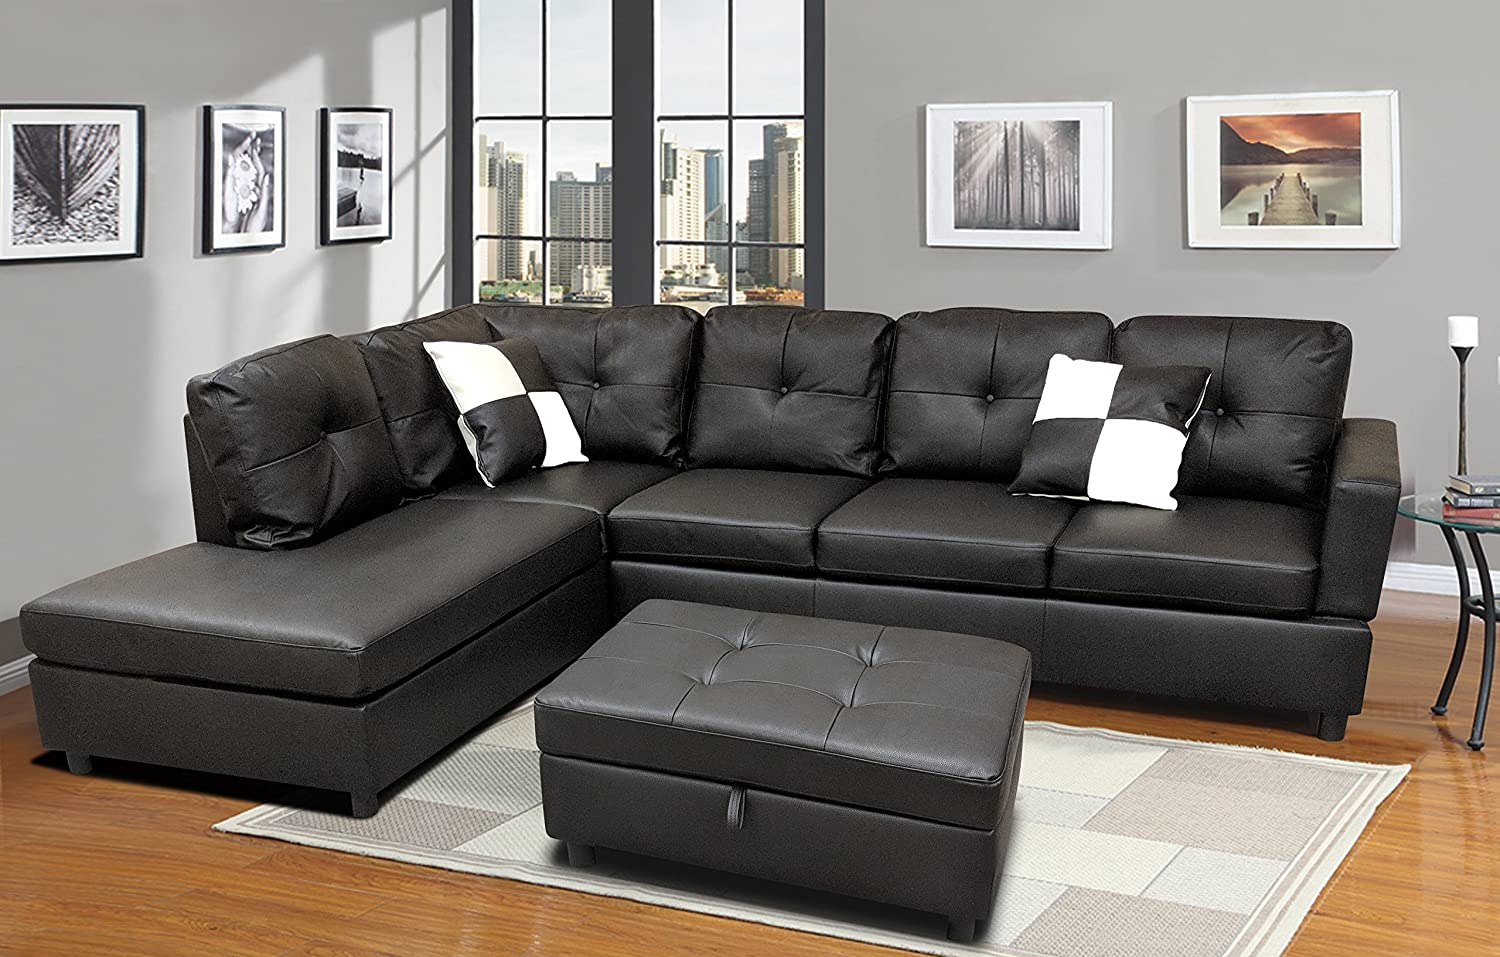 Terrific Winpex 3 Piece Faux Leather Sectional Sofa Set With Free Pdpeps Interior Chair Design Pdpepsorg